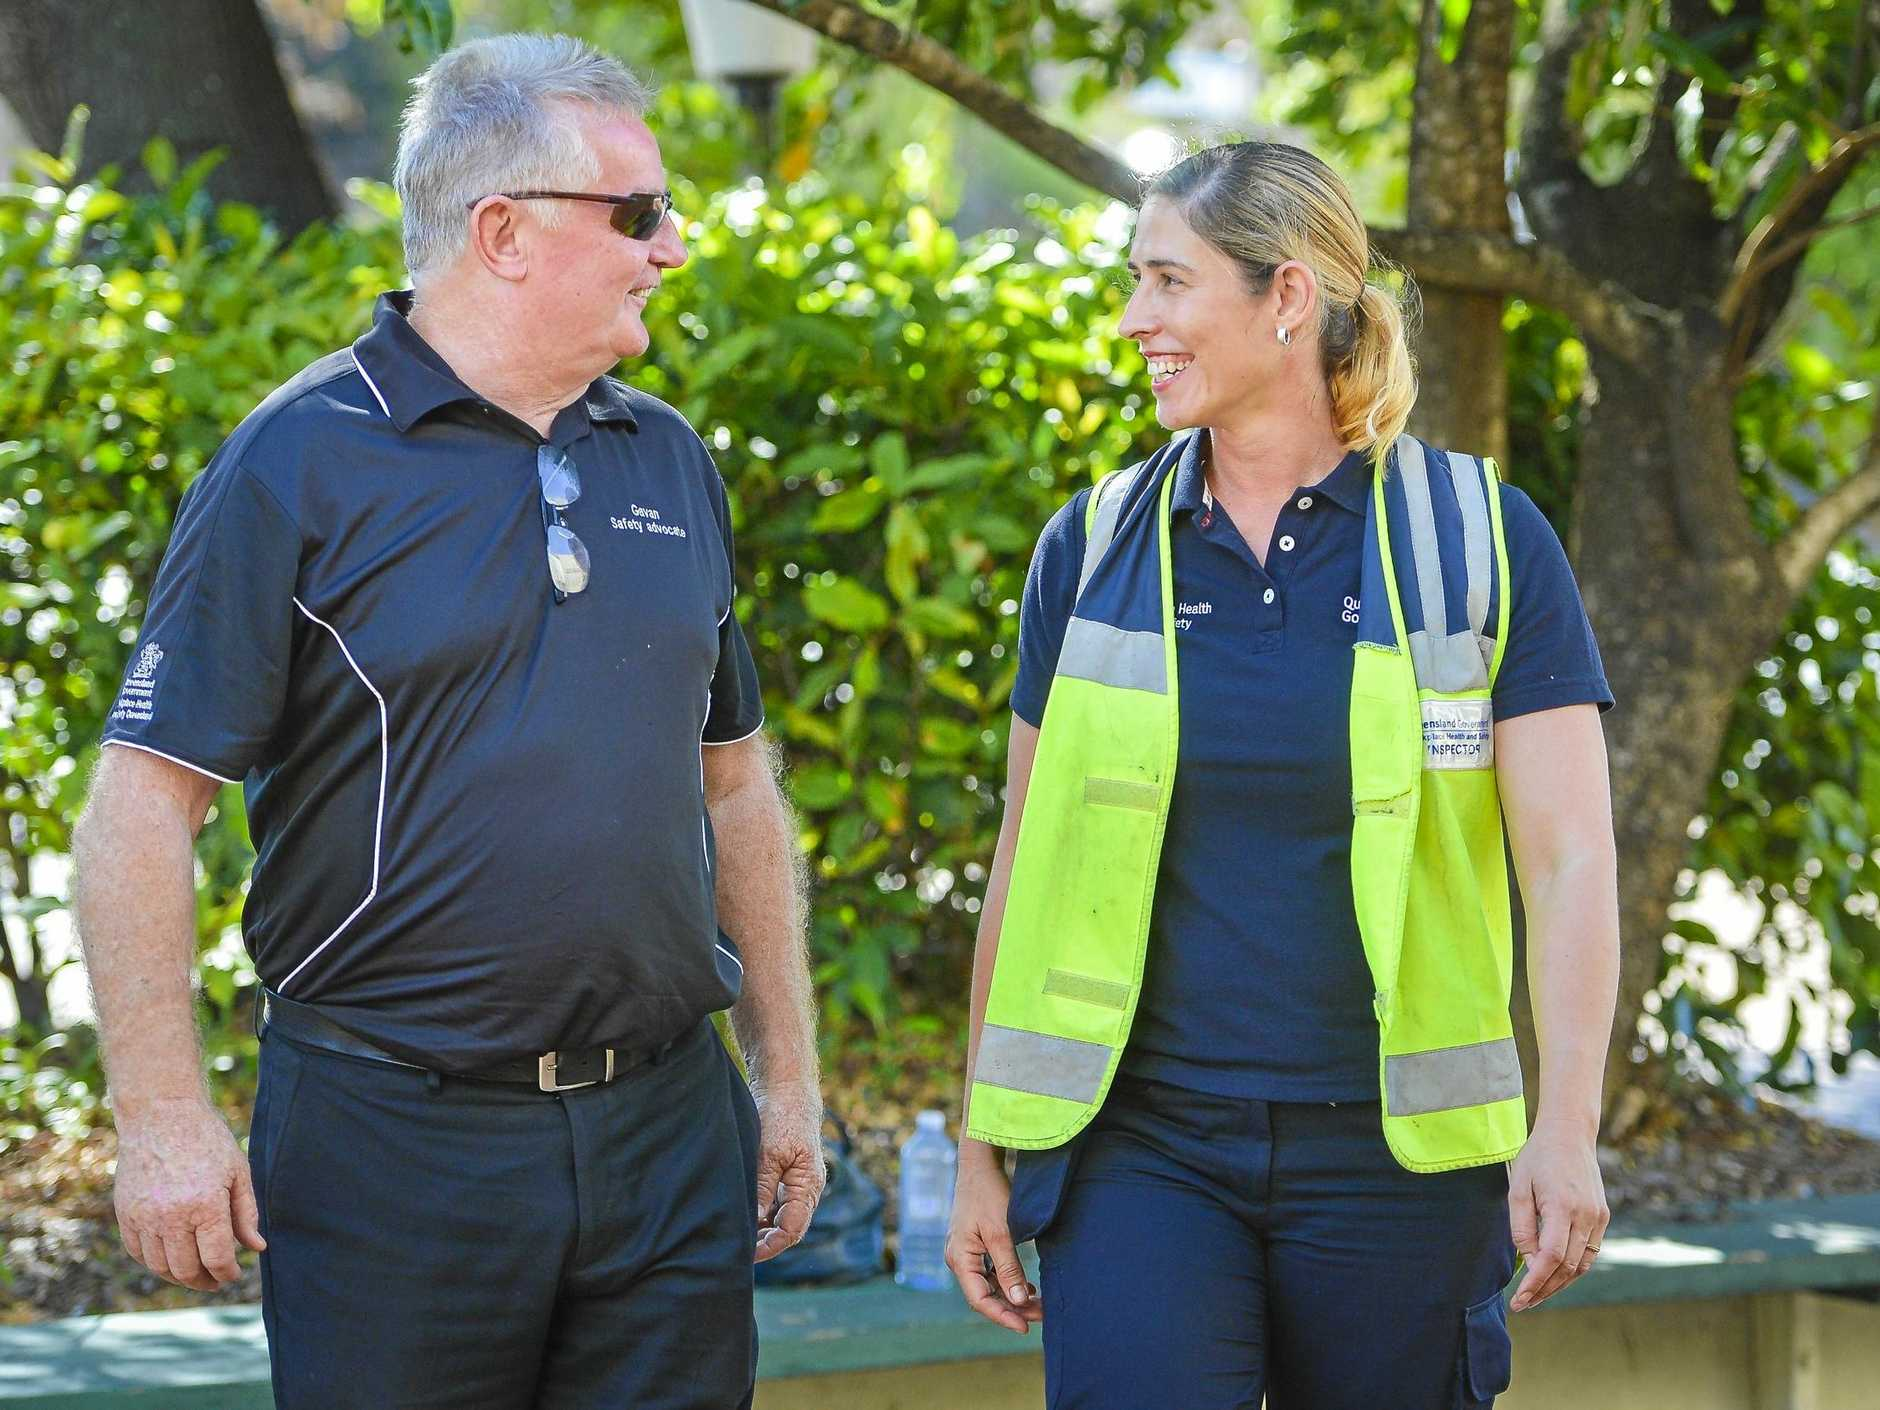 Queensland Government Workplace Health and Safety Inspector Jade Sawtell and workplace health and safety advocate Gavan McGuane in Gladstone on 11 October 2018.